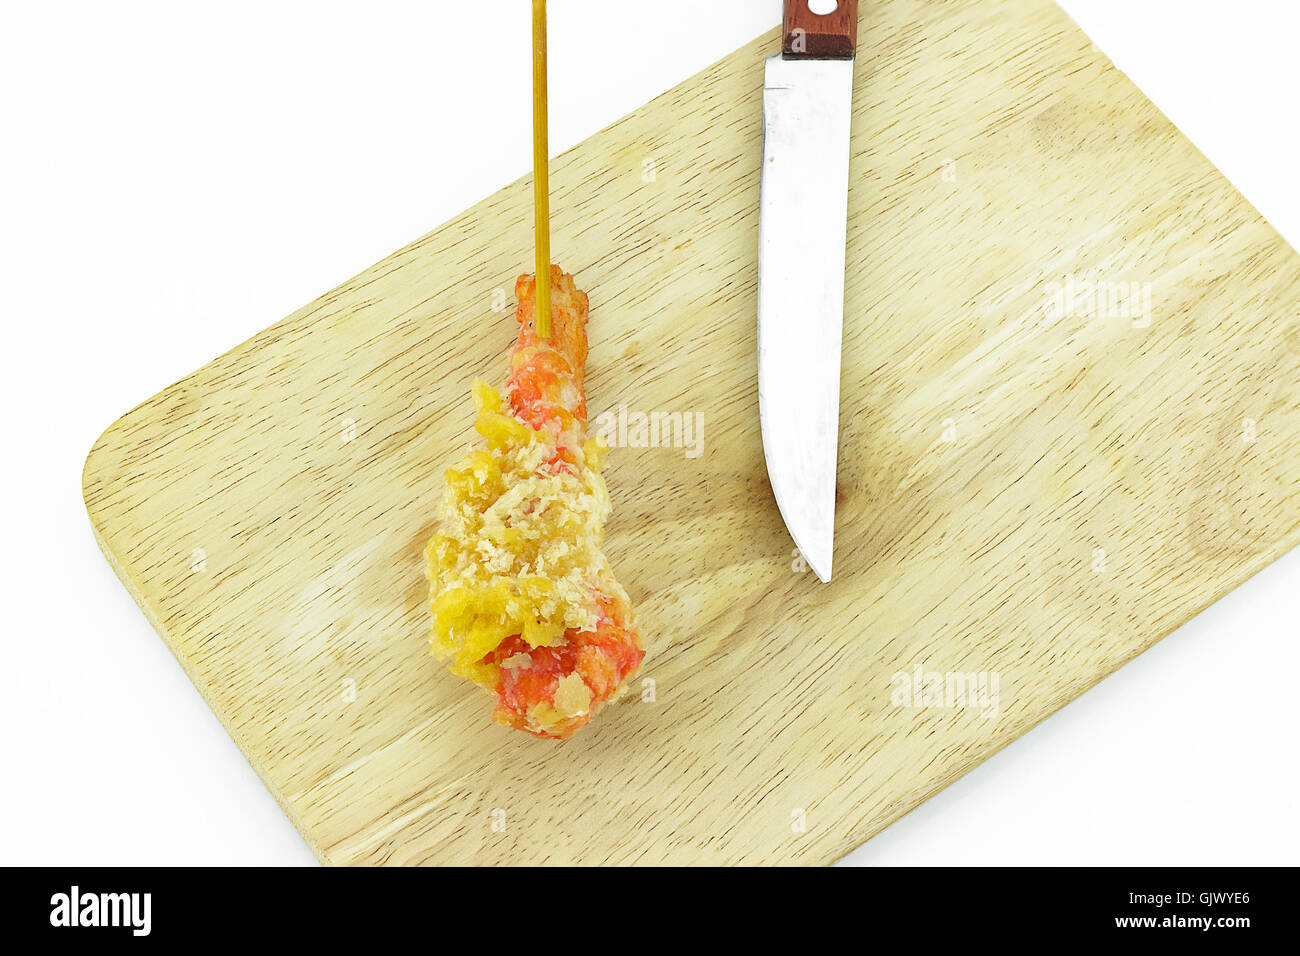 Tempura shrimp skewer species - Stock Image